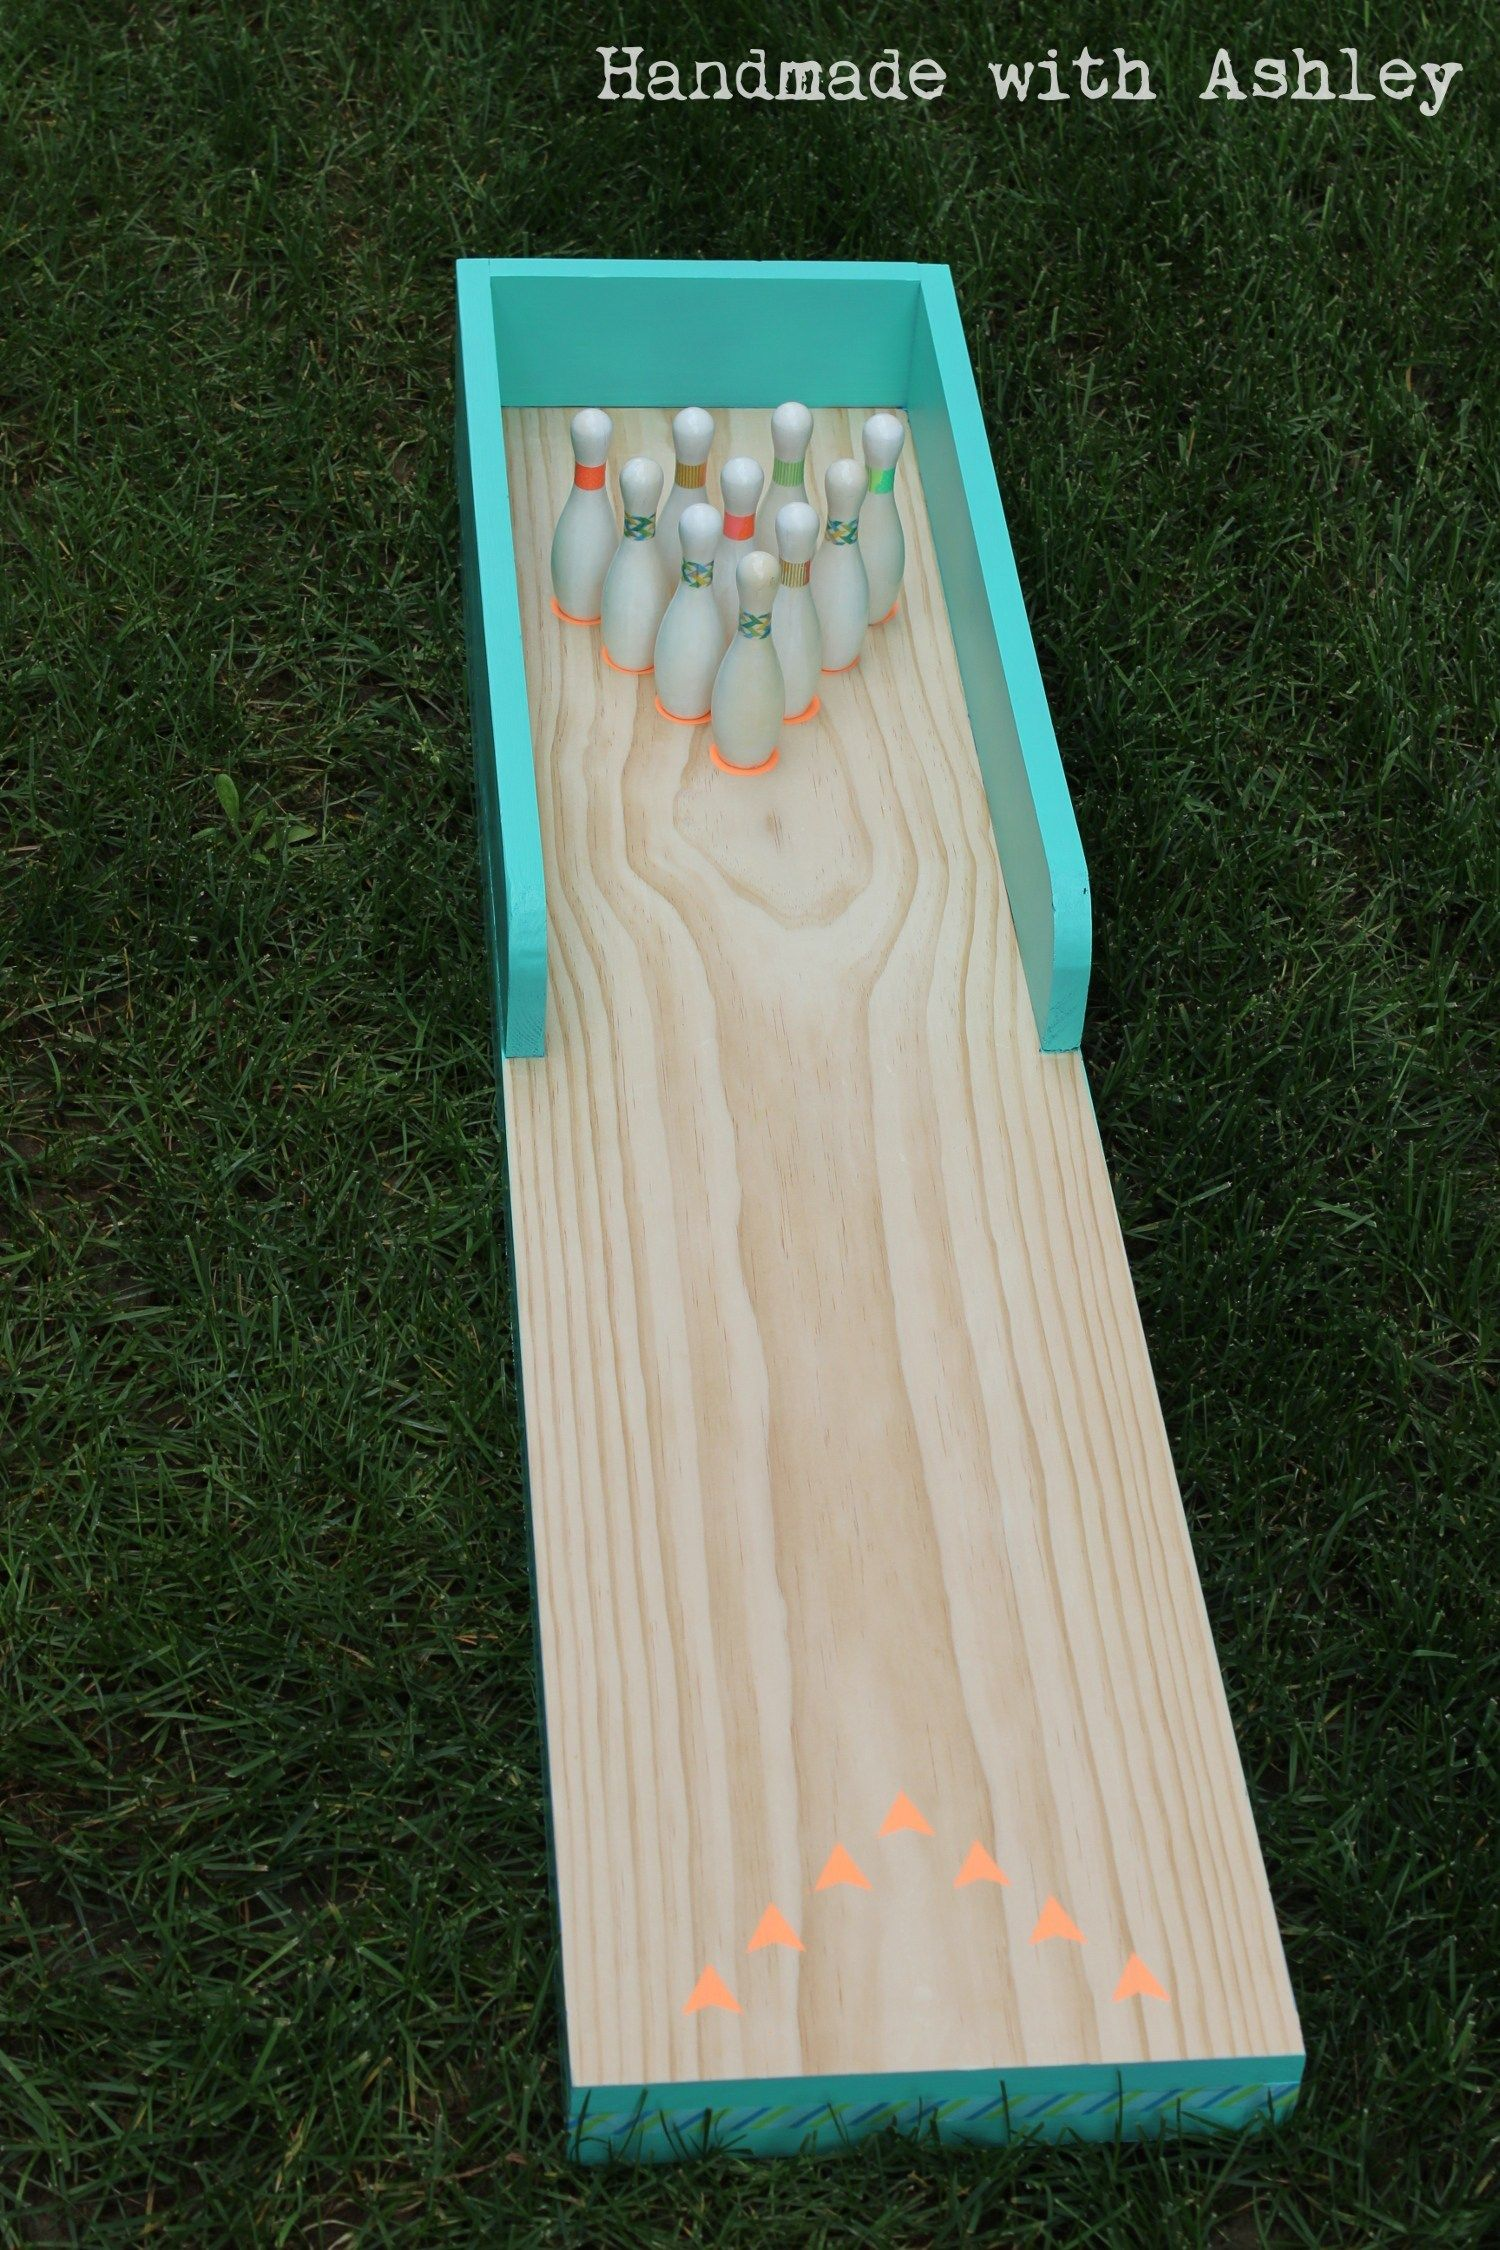 DIY Bowling Lane (Tutorial - Diy bowling, Woodworking projects diy, Diy for kids, Diy wood projects, Remodelaholic diy, Projects - Follow this tutorial for a DIY bowling lane to scratch your bowling itch at home  This is a weekend project that makes great use of your scrap lumber!